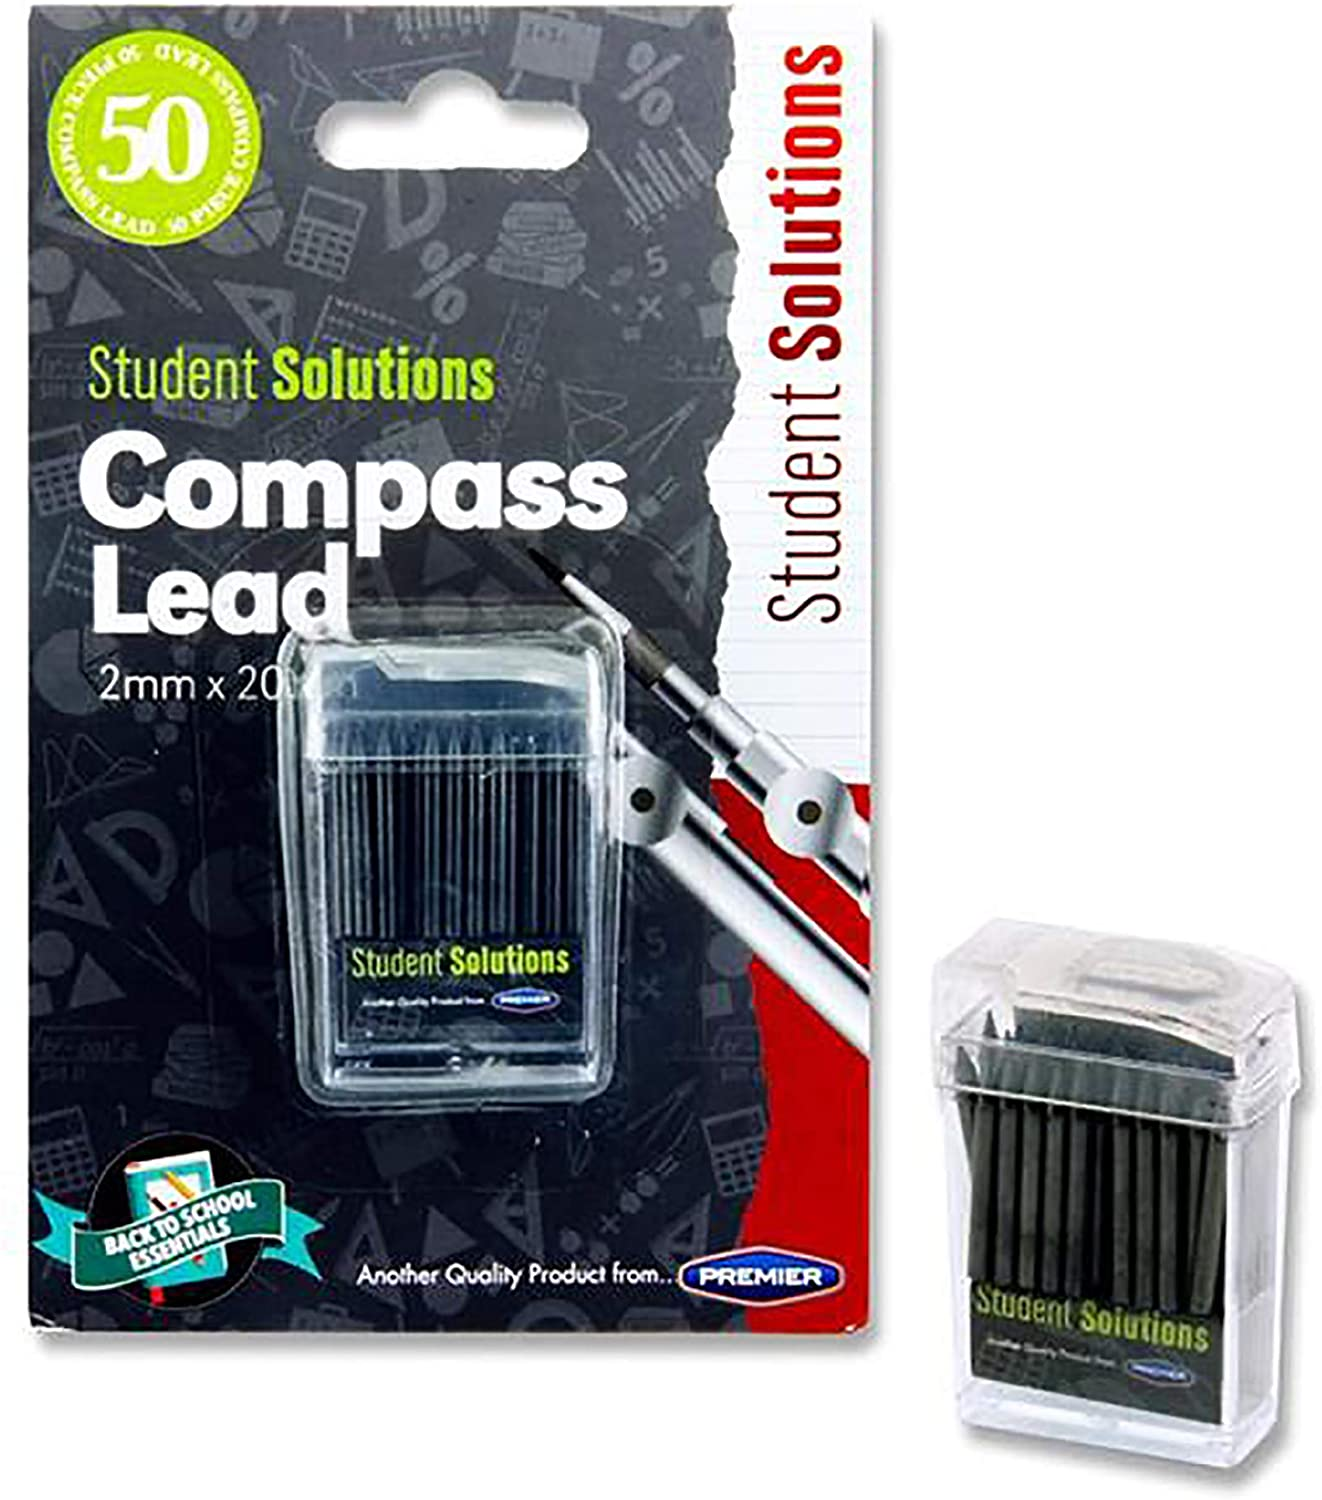 Premier Stationery W2112555 2 x 20 mm Student Solutions Compass - Black (Pack of 50)